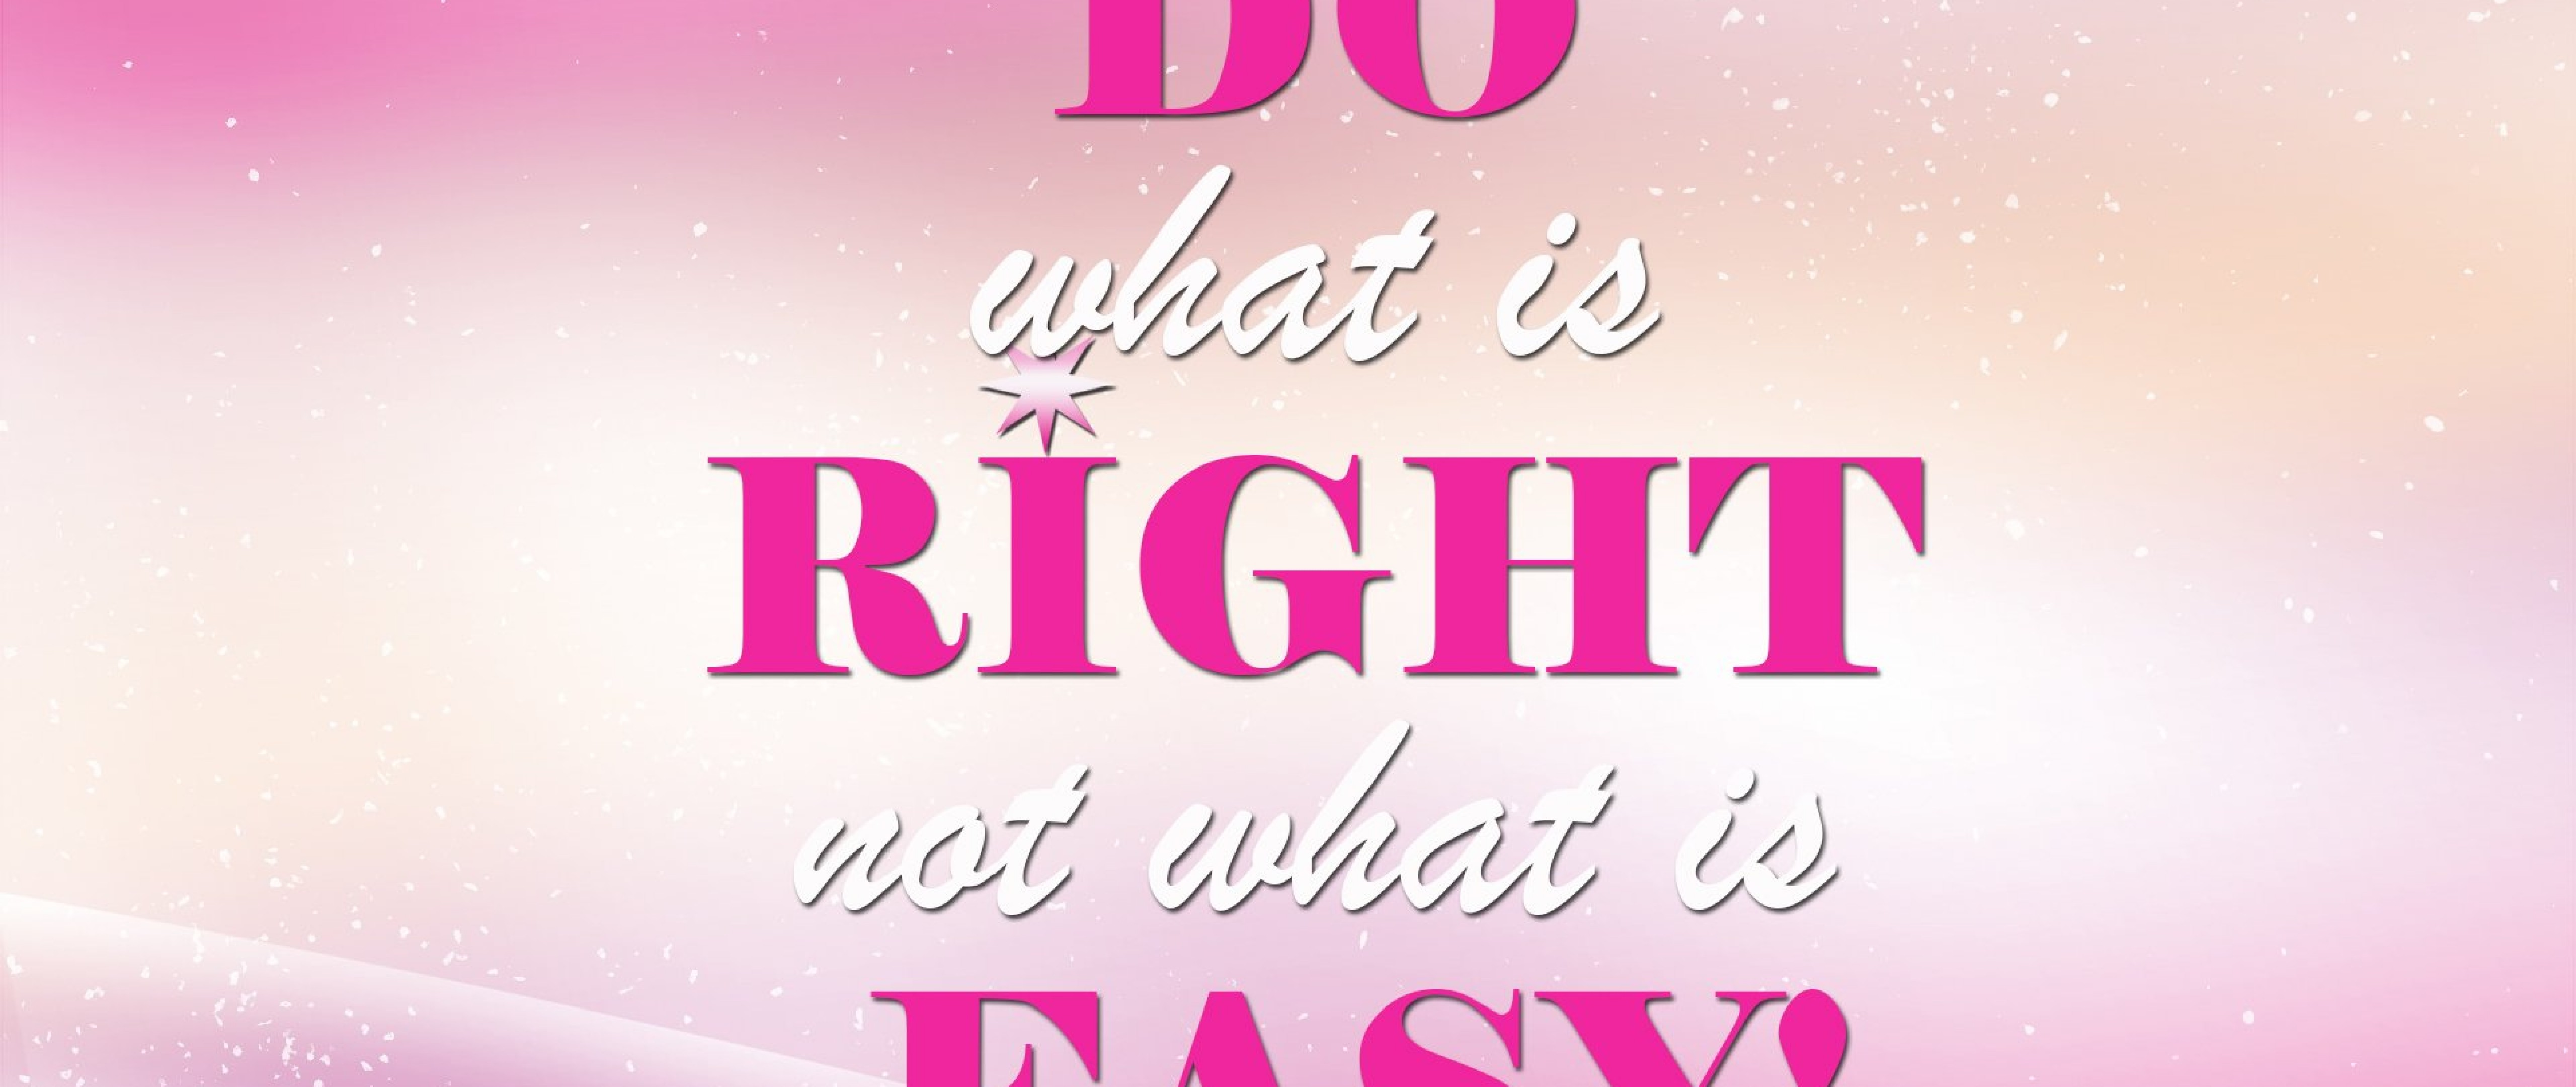 Do what is right HD Wallpaper